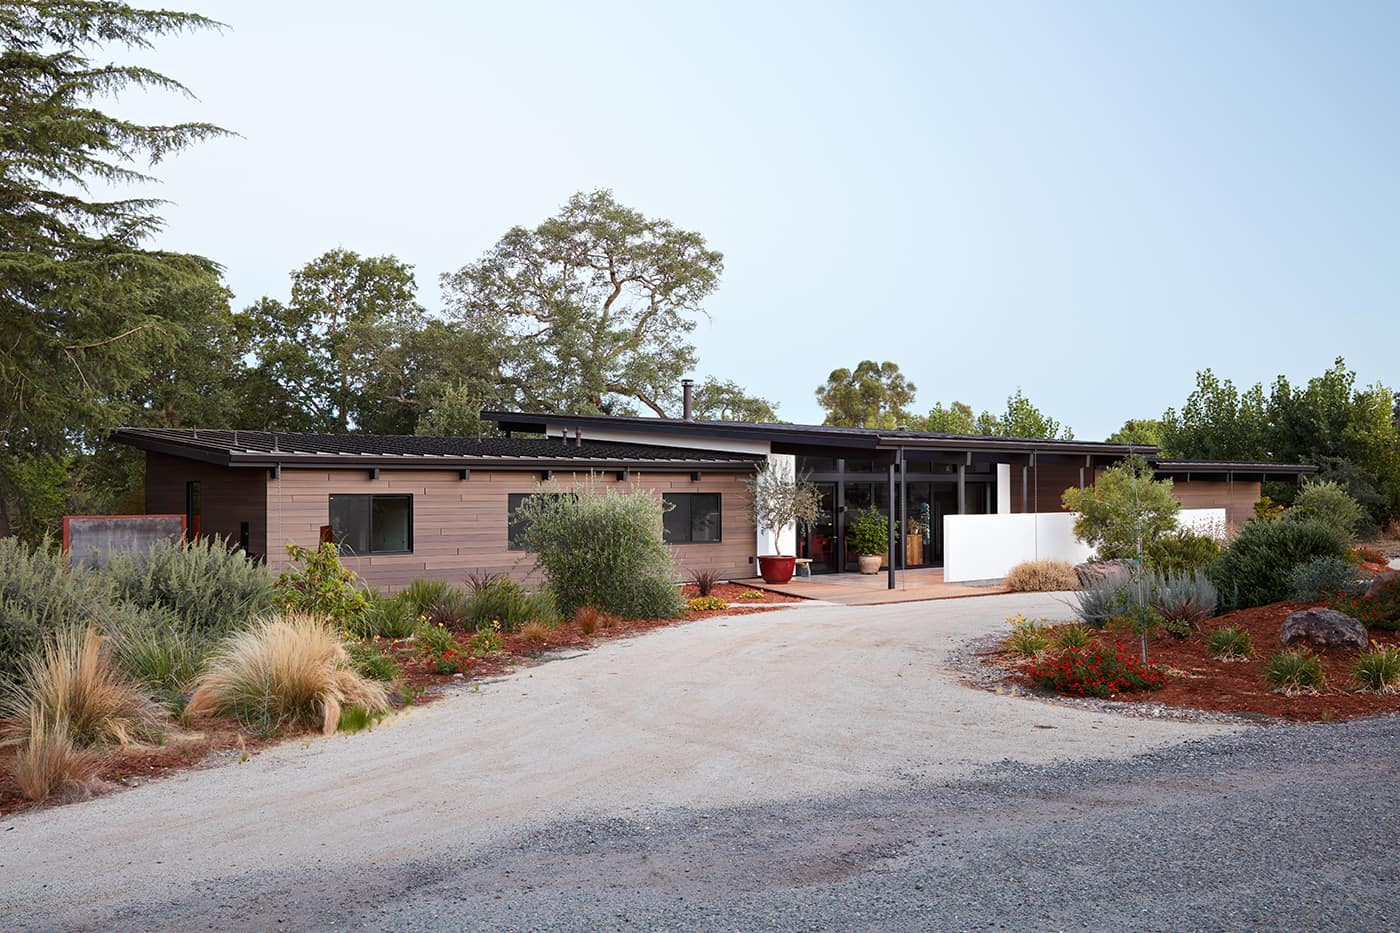 mid-century house renovation by Klopf architects in Sacramento - exterior driveway